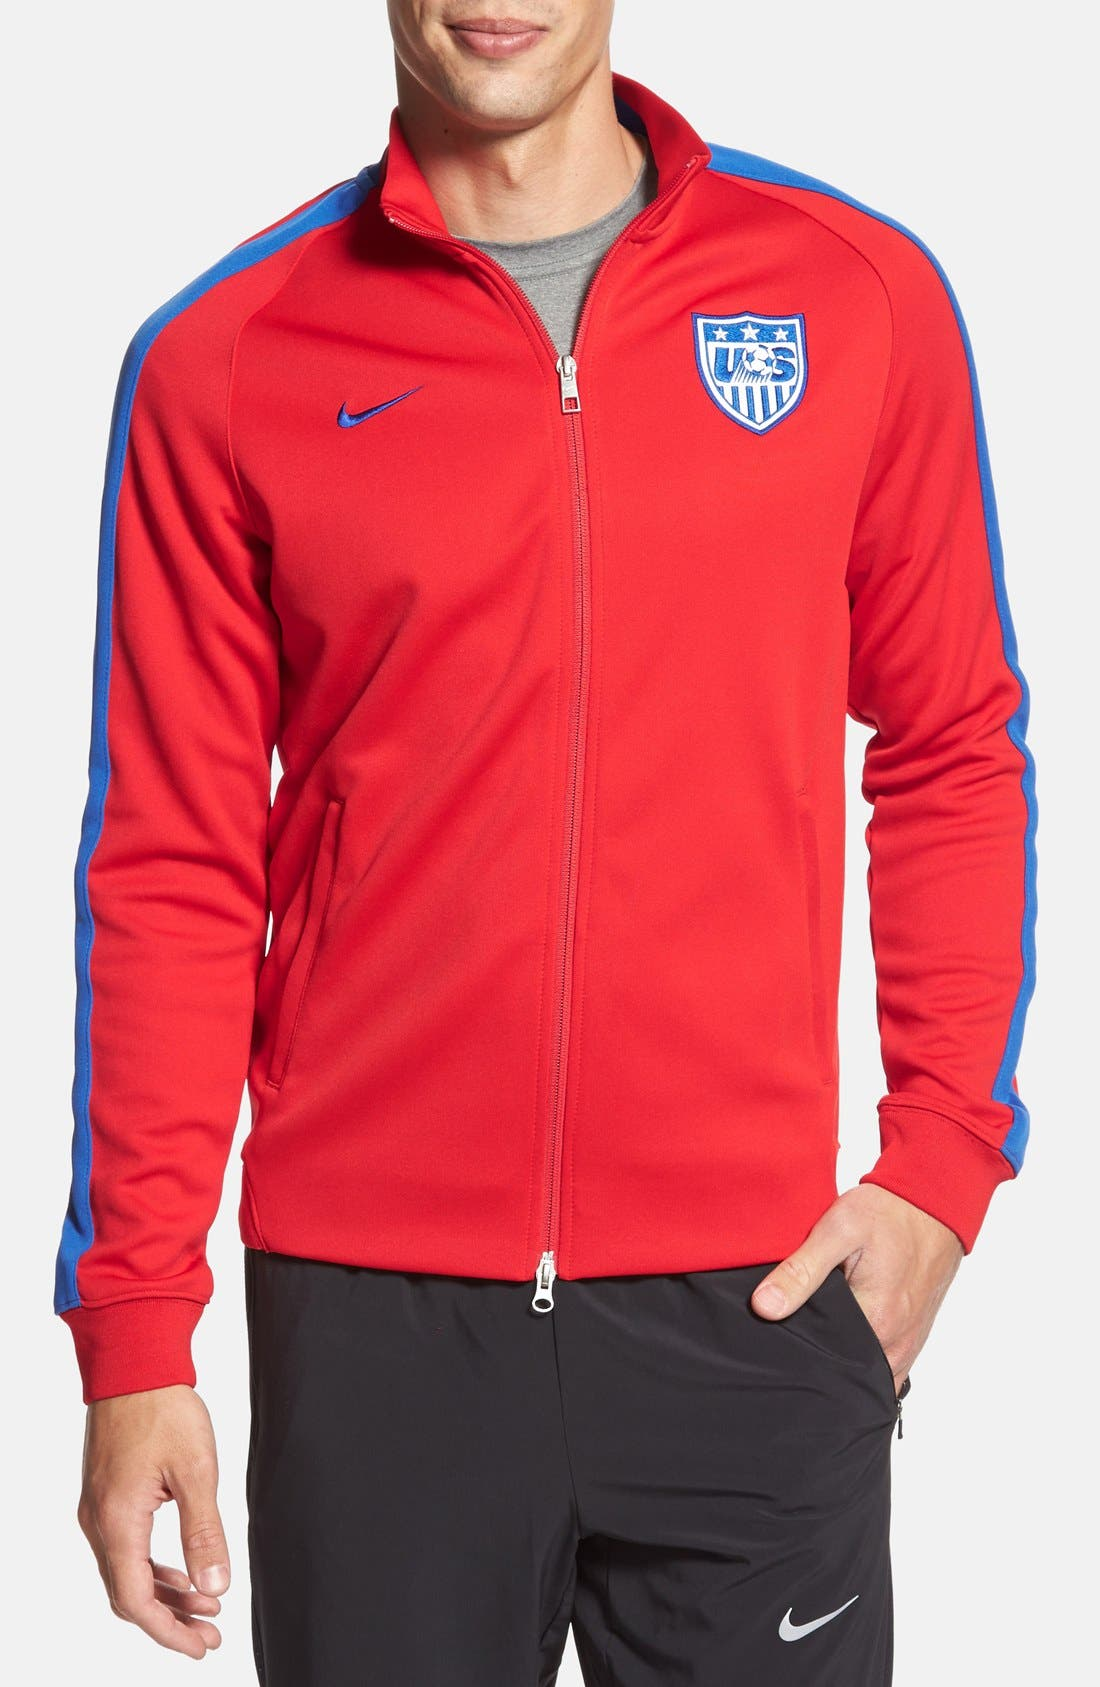 Main Image - Nike 'USA - N98 World Cup Authentic' Track Jacket